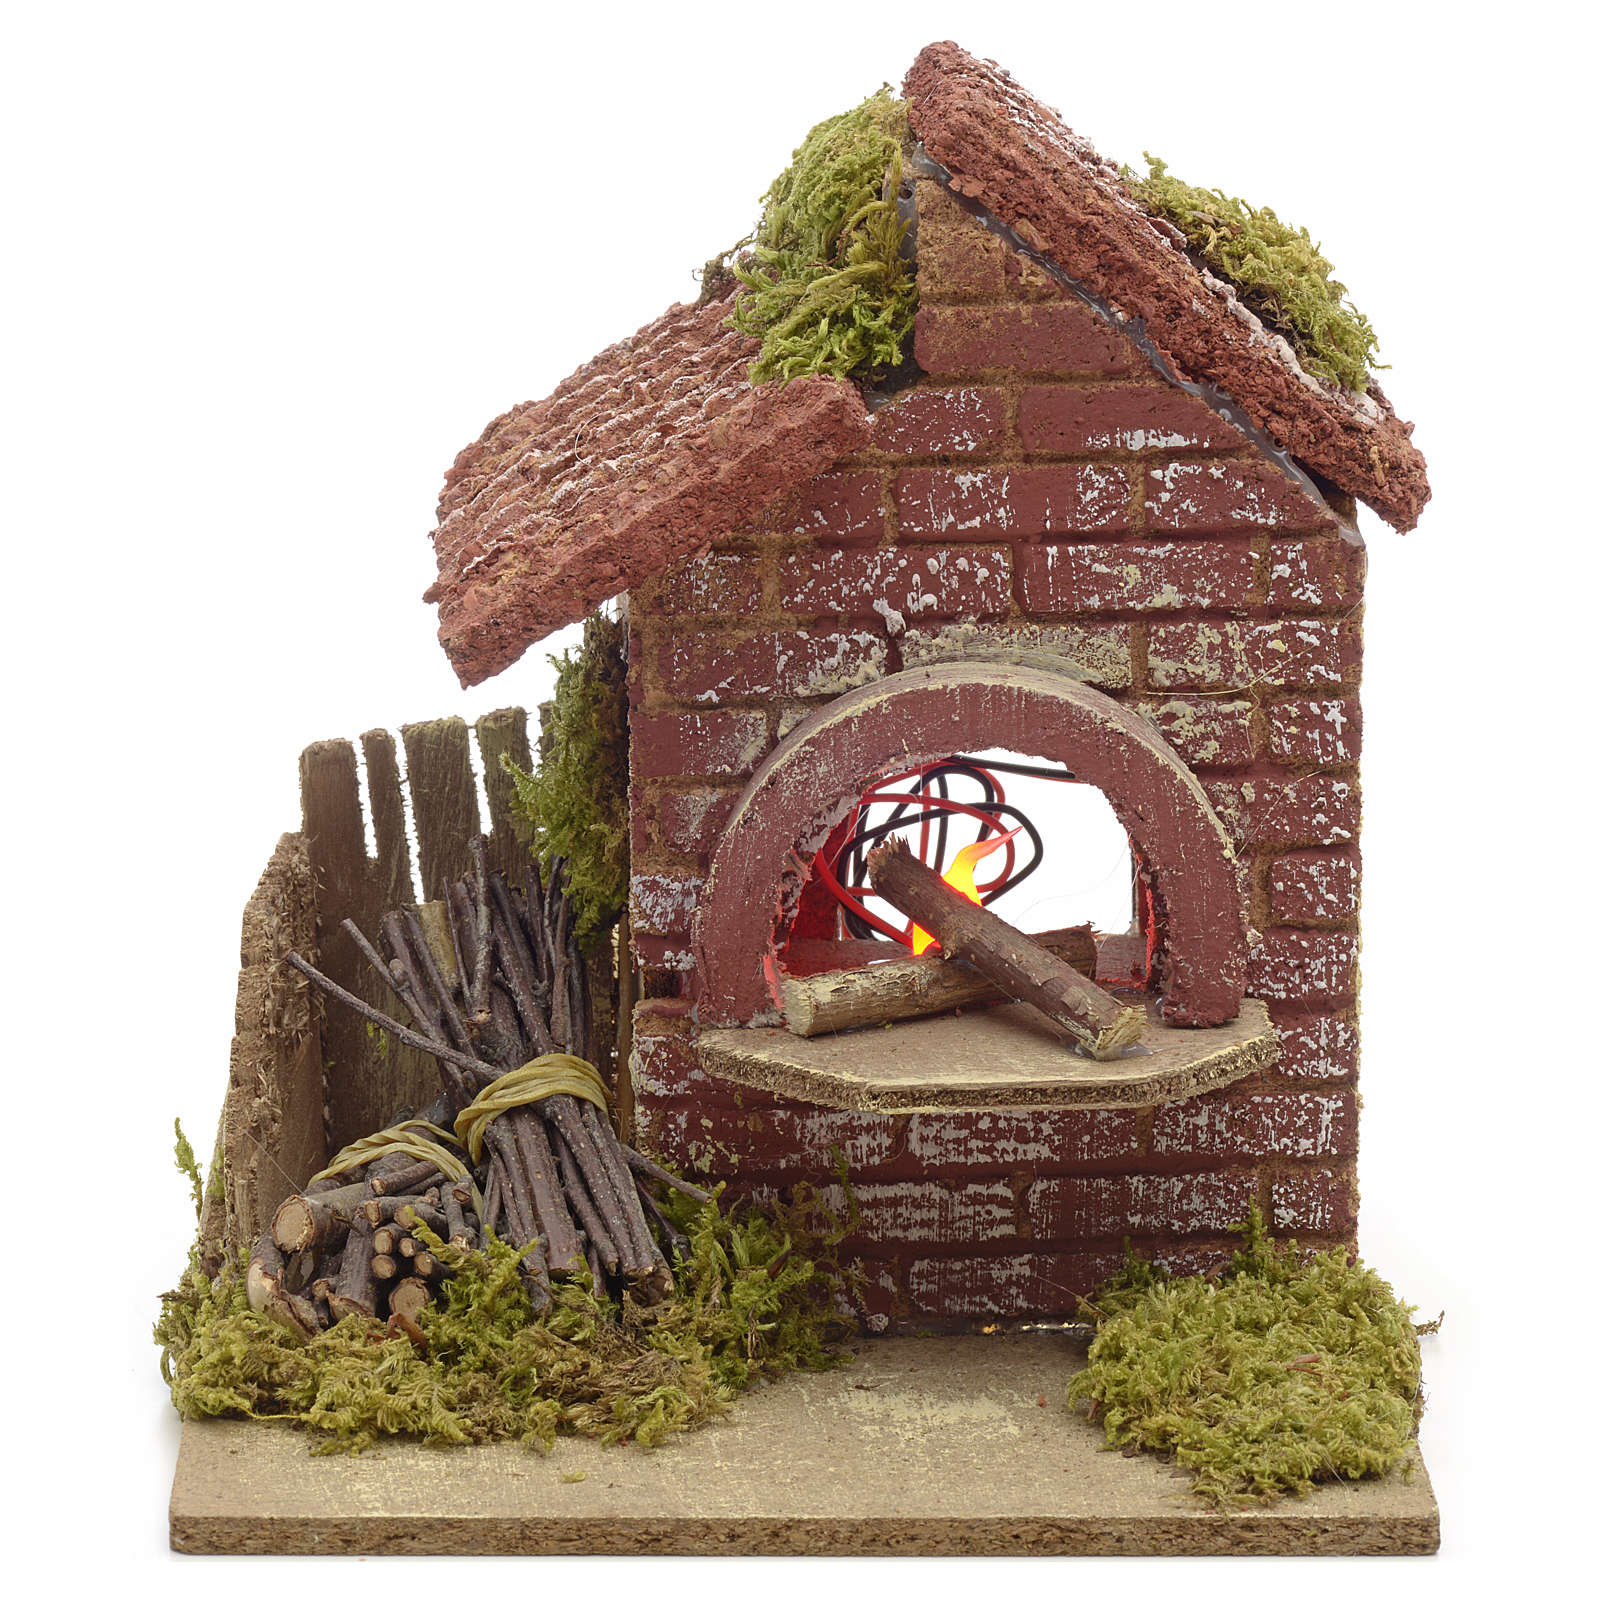 Nativity accessory, battery powered oven with bundles 16x14x14cm 4